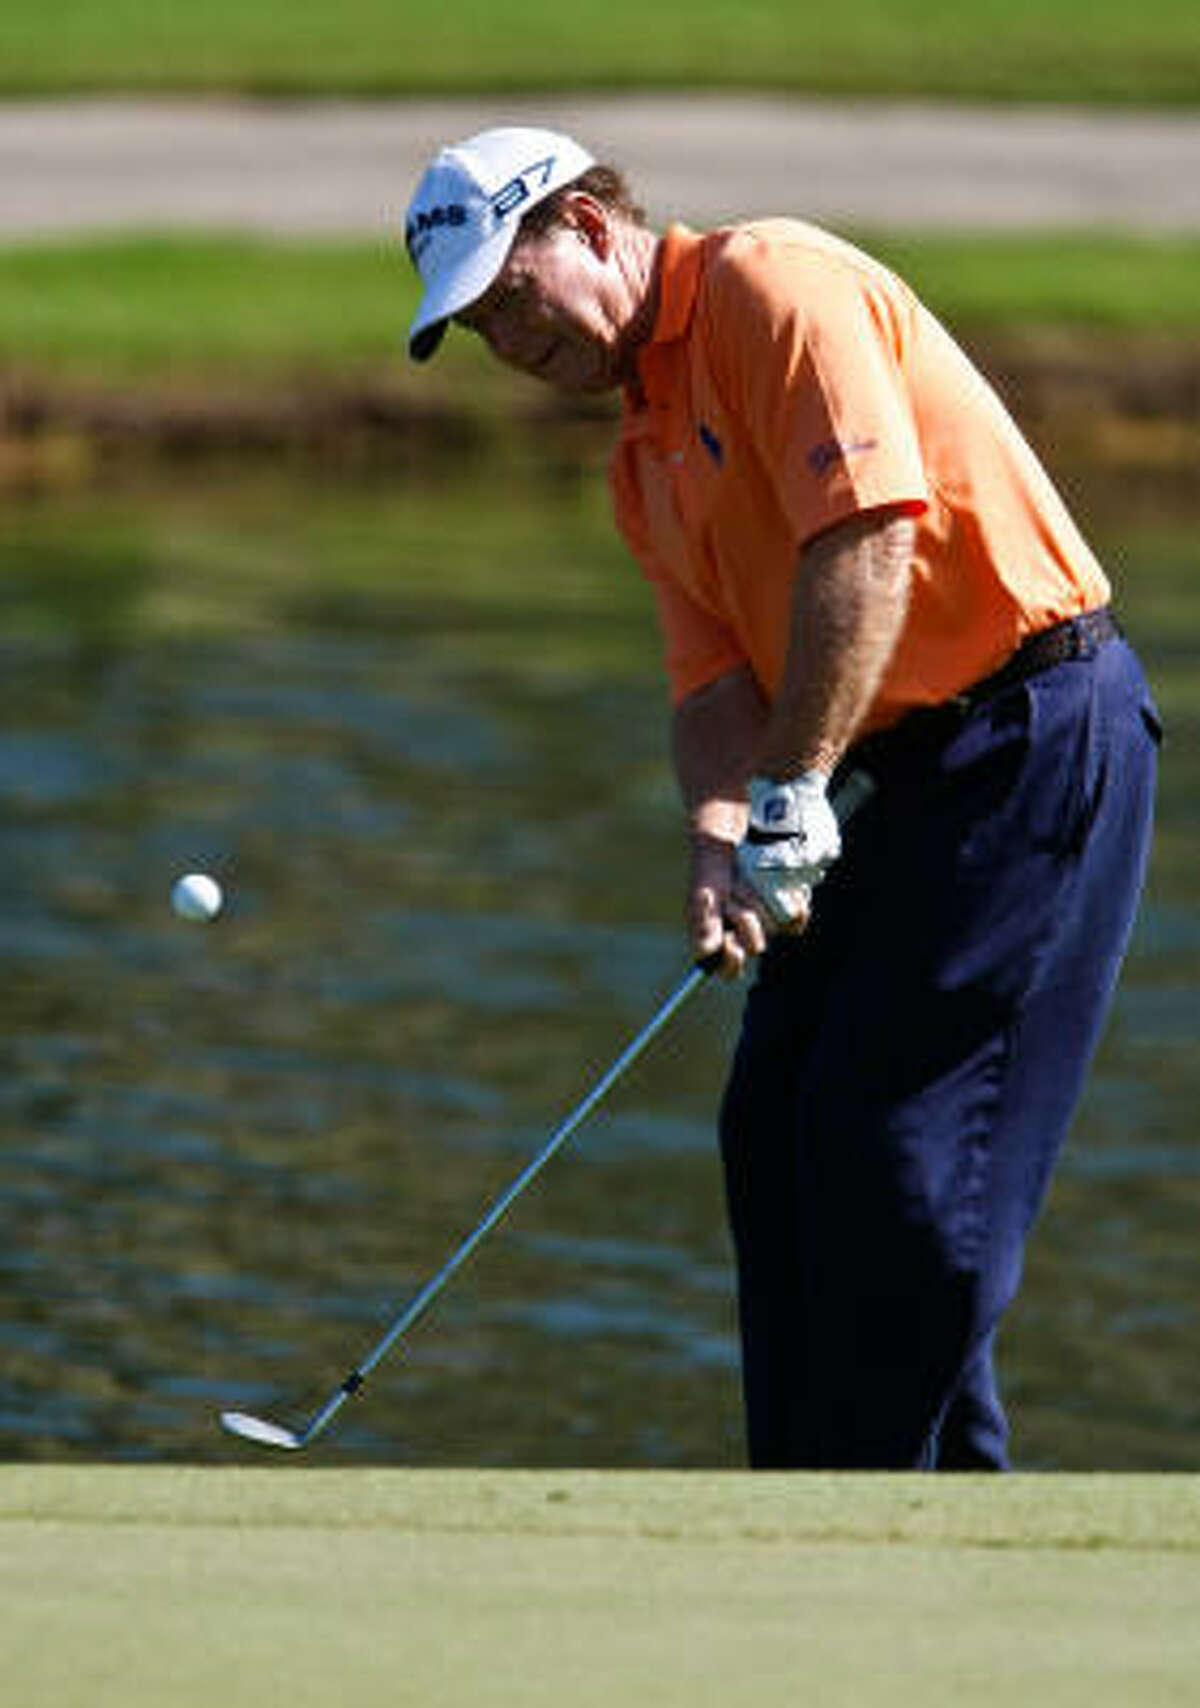 Tom Watson chips a shot onto the green at the third hole.